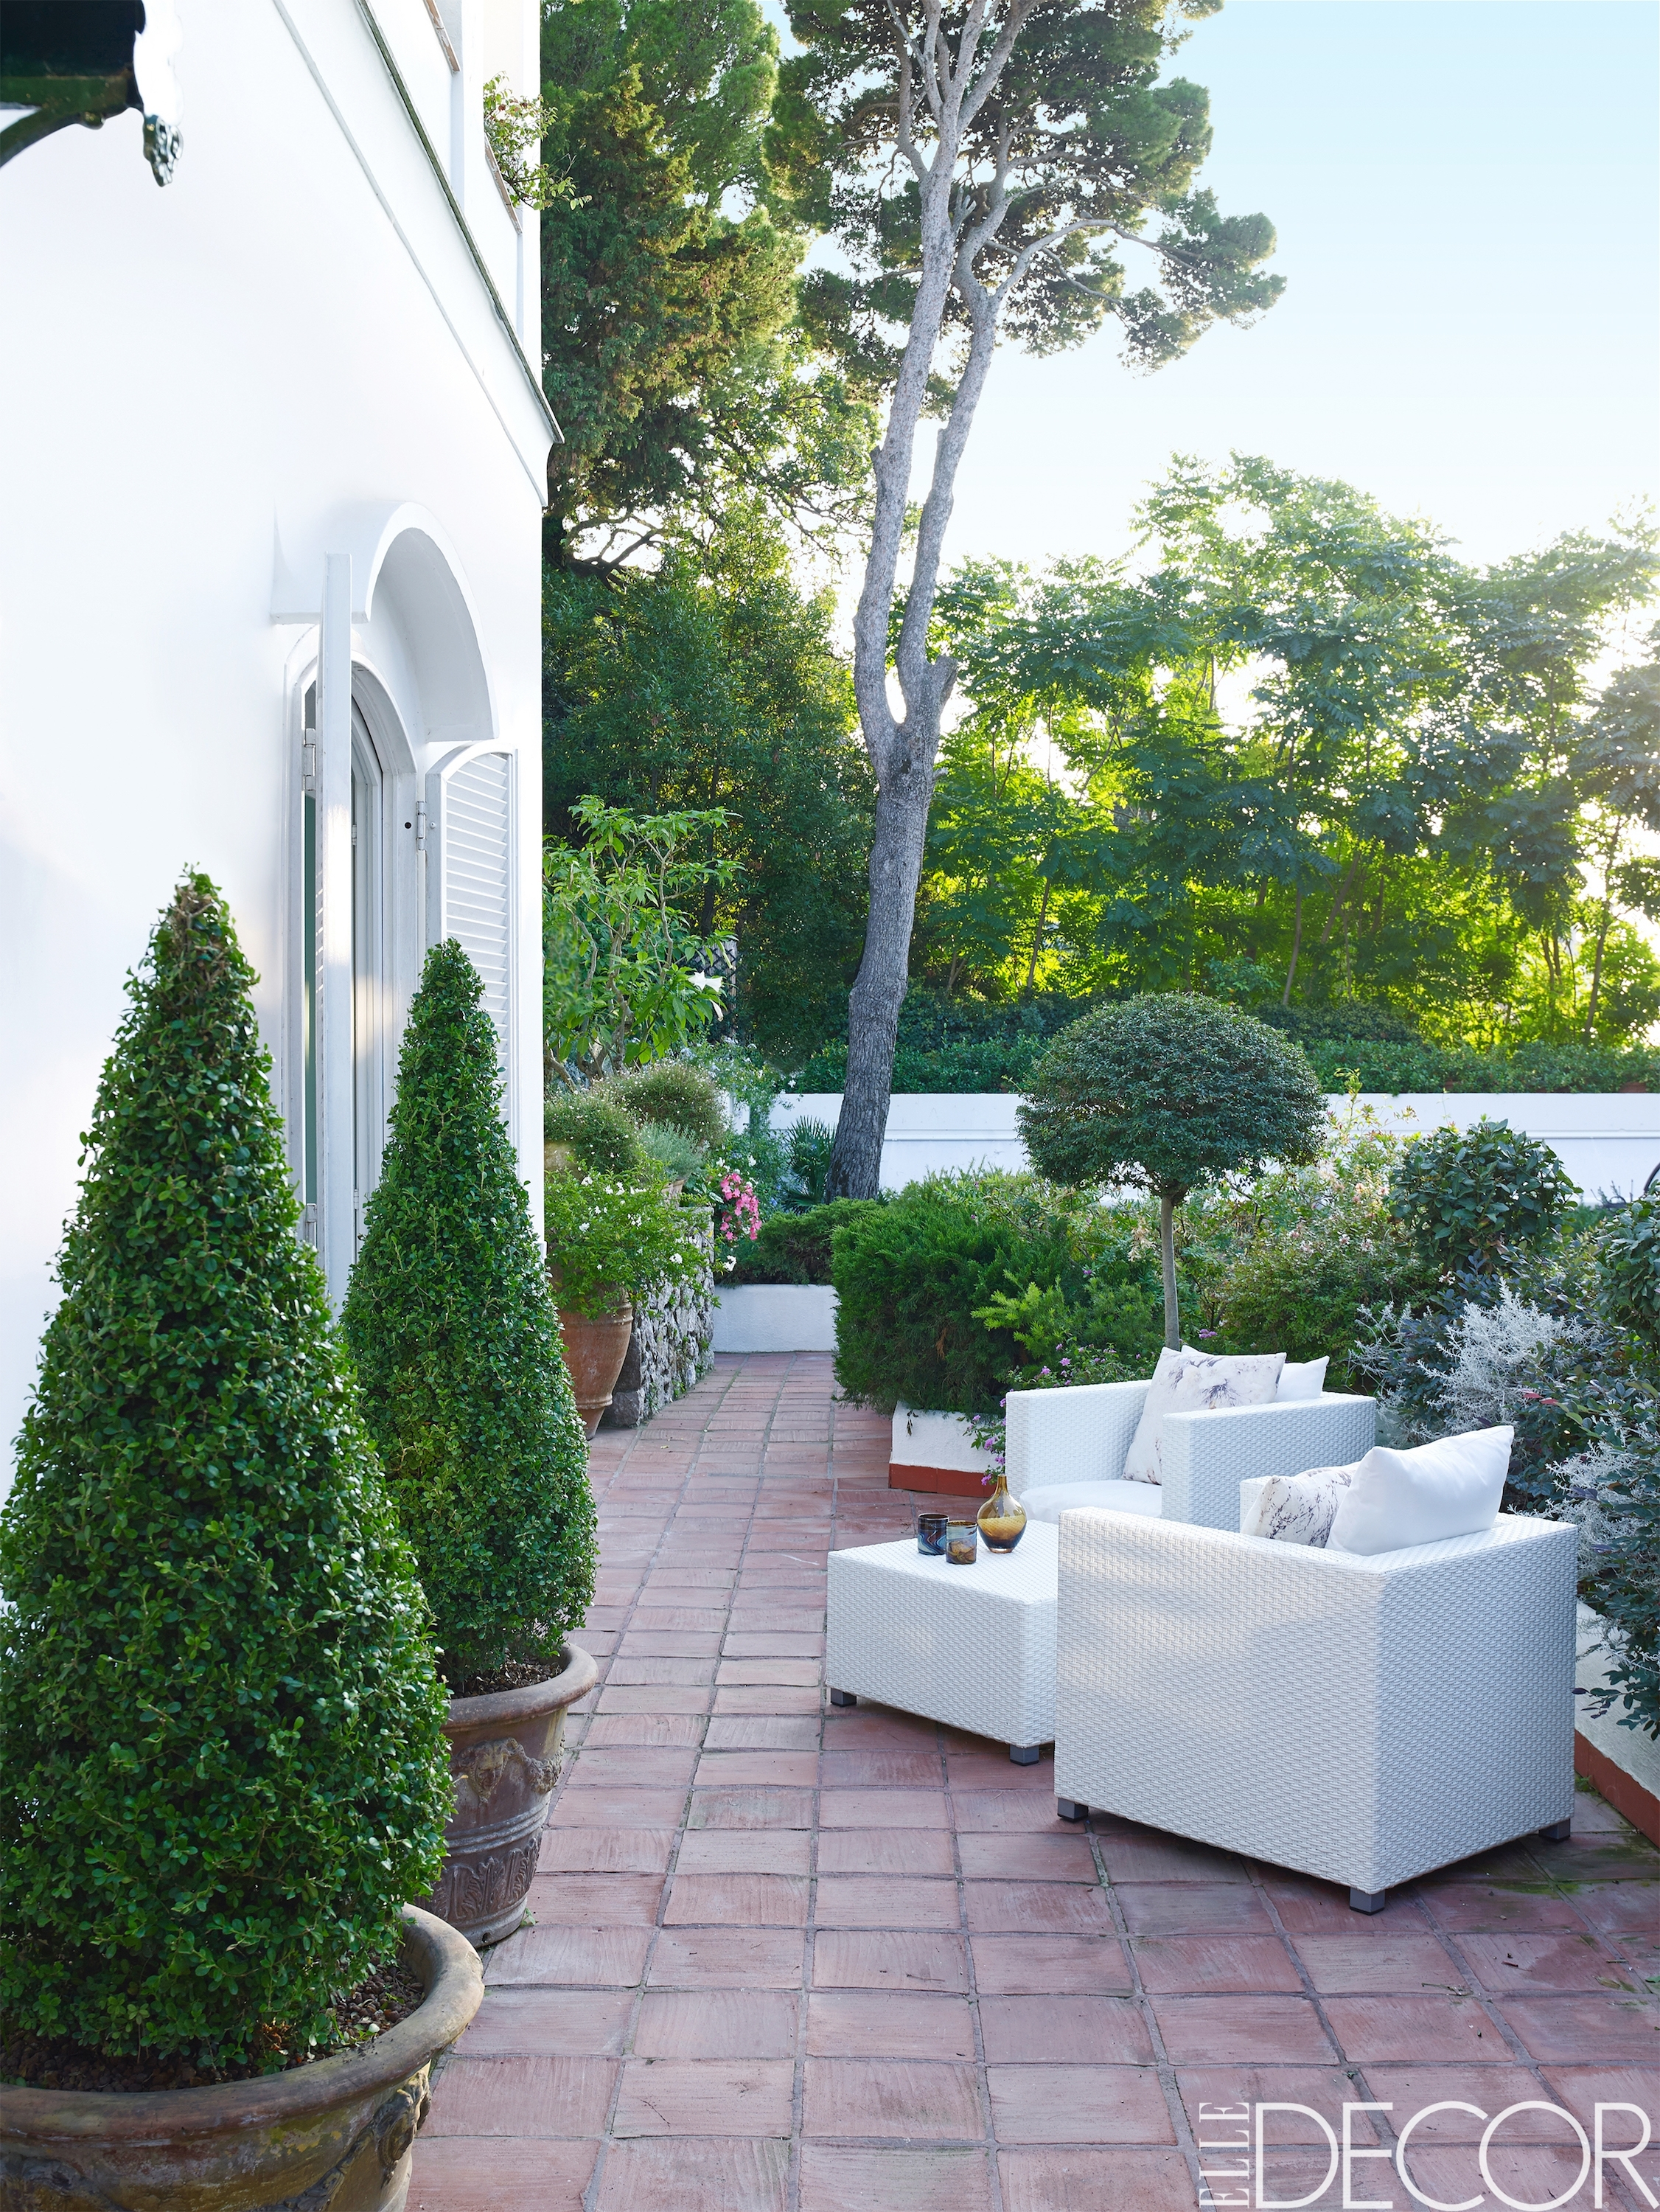 20 Patio Decor Ideas For Lazing Al Fresco This Summer with The Best Ideas For Garden Villa Apartments